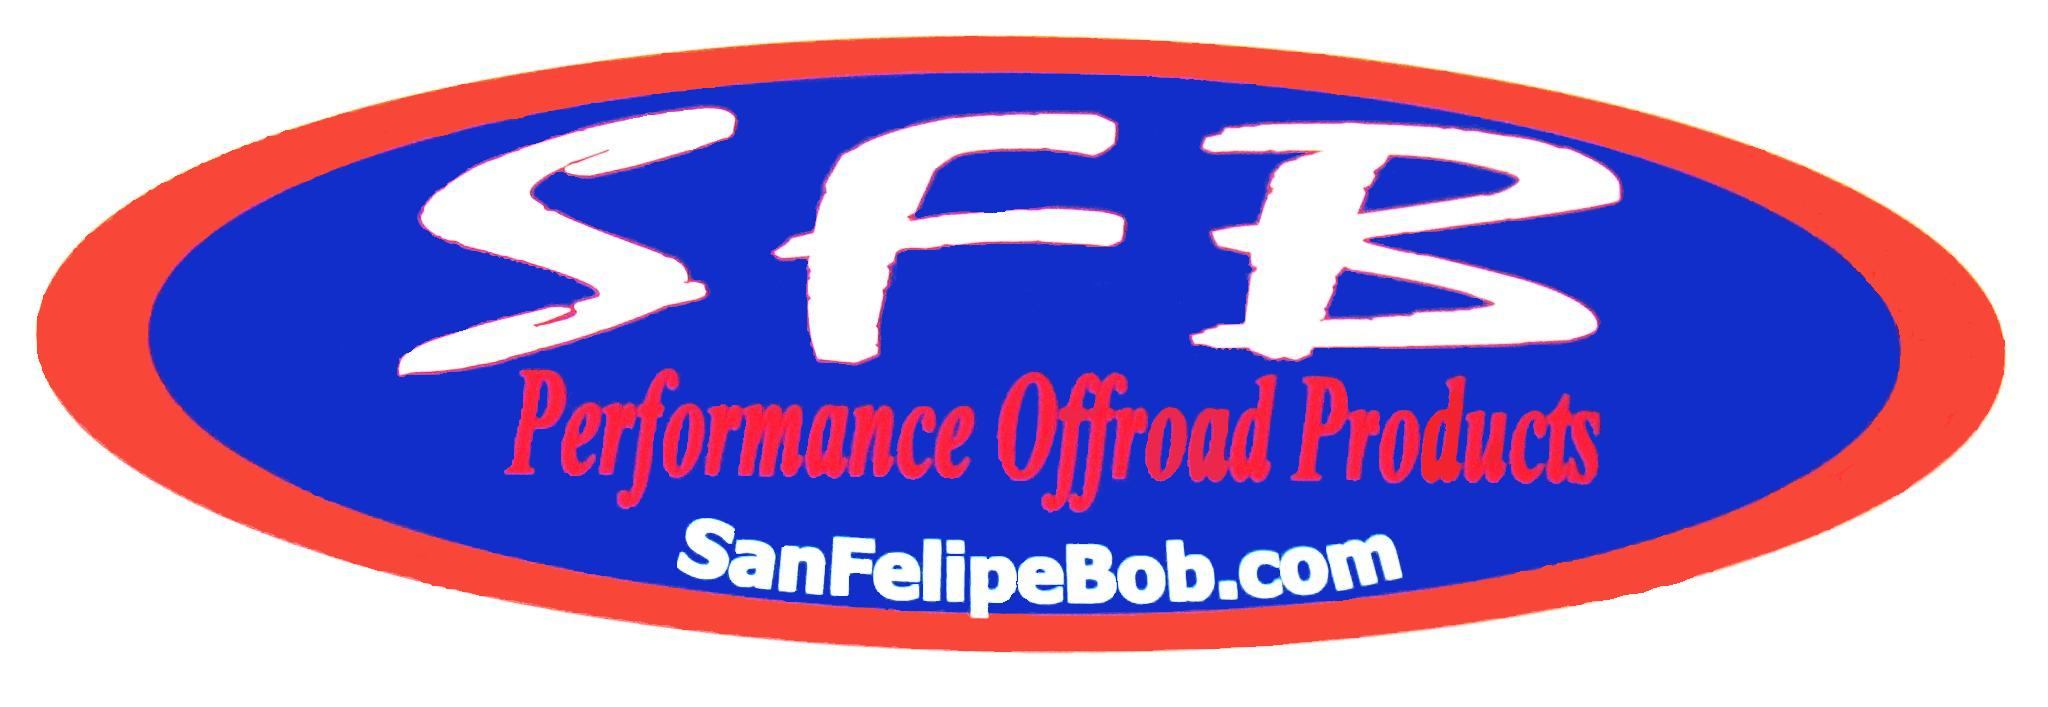 SFB Logo paint